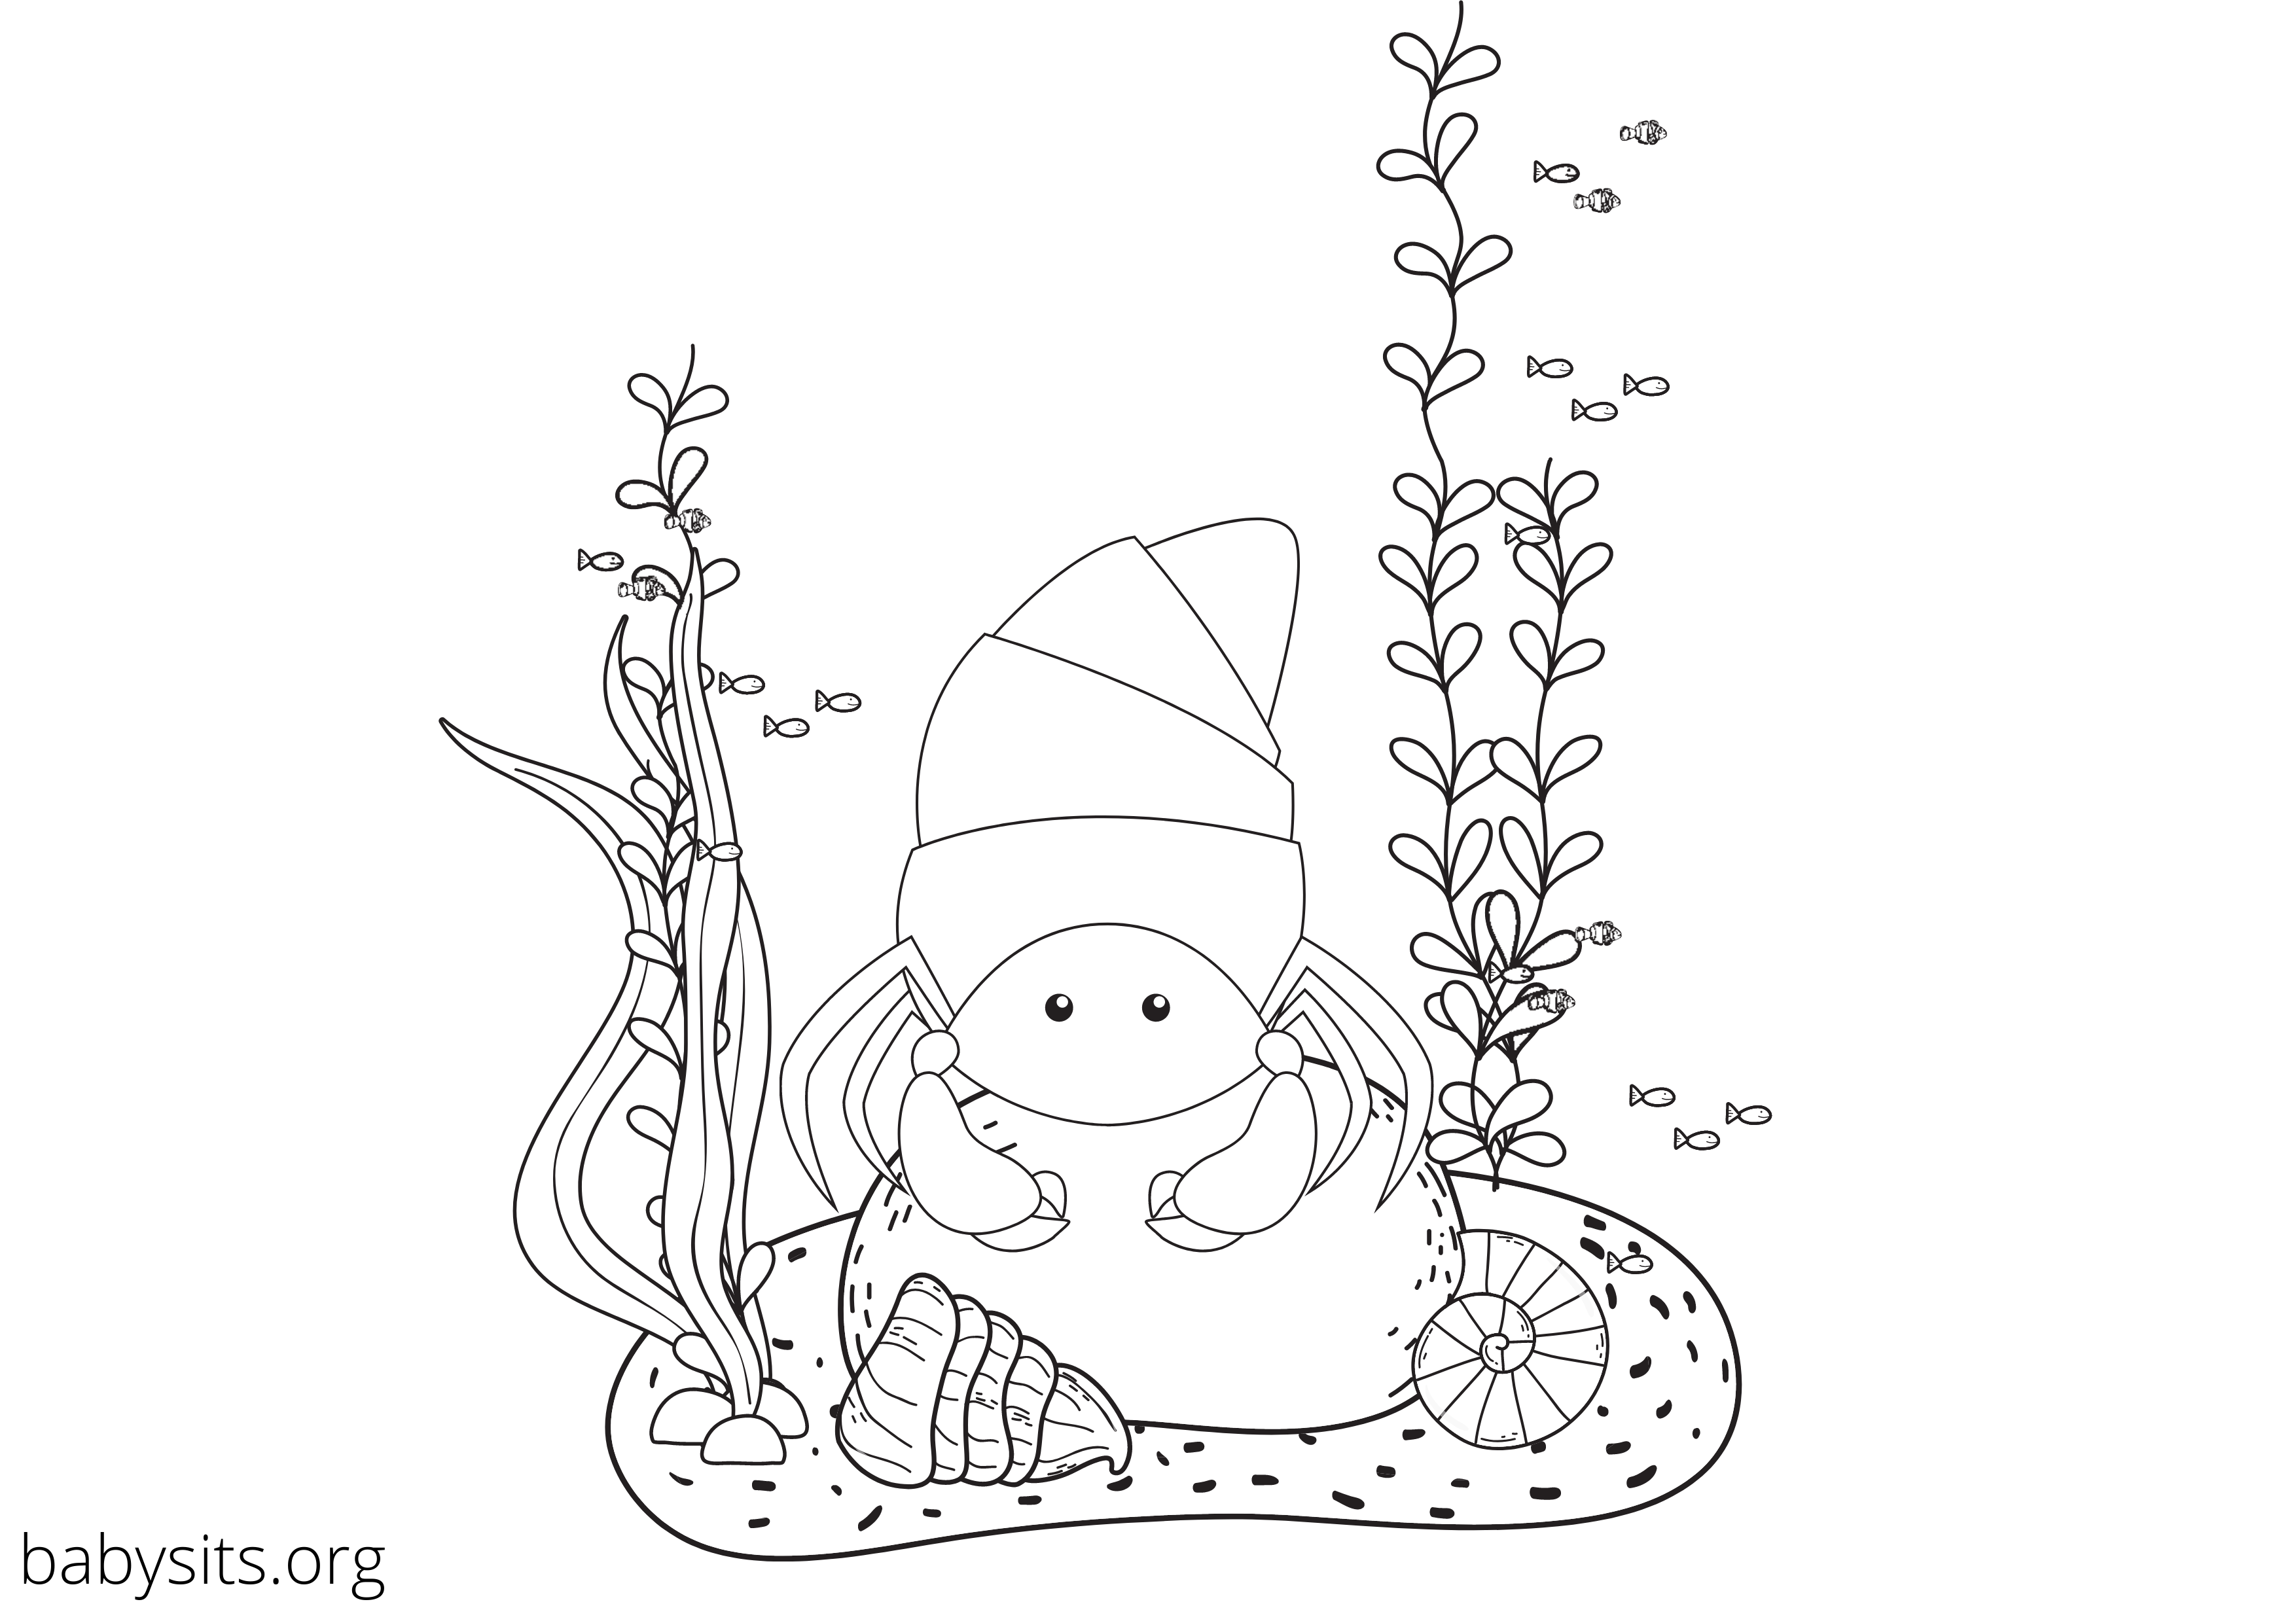 Crab under the sea colouring page